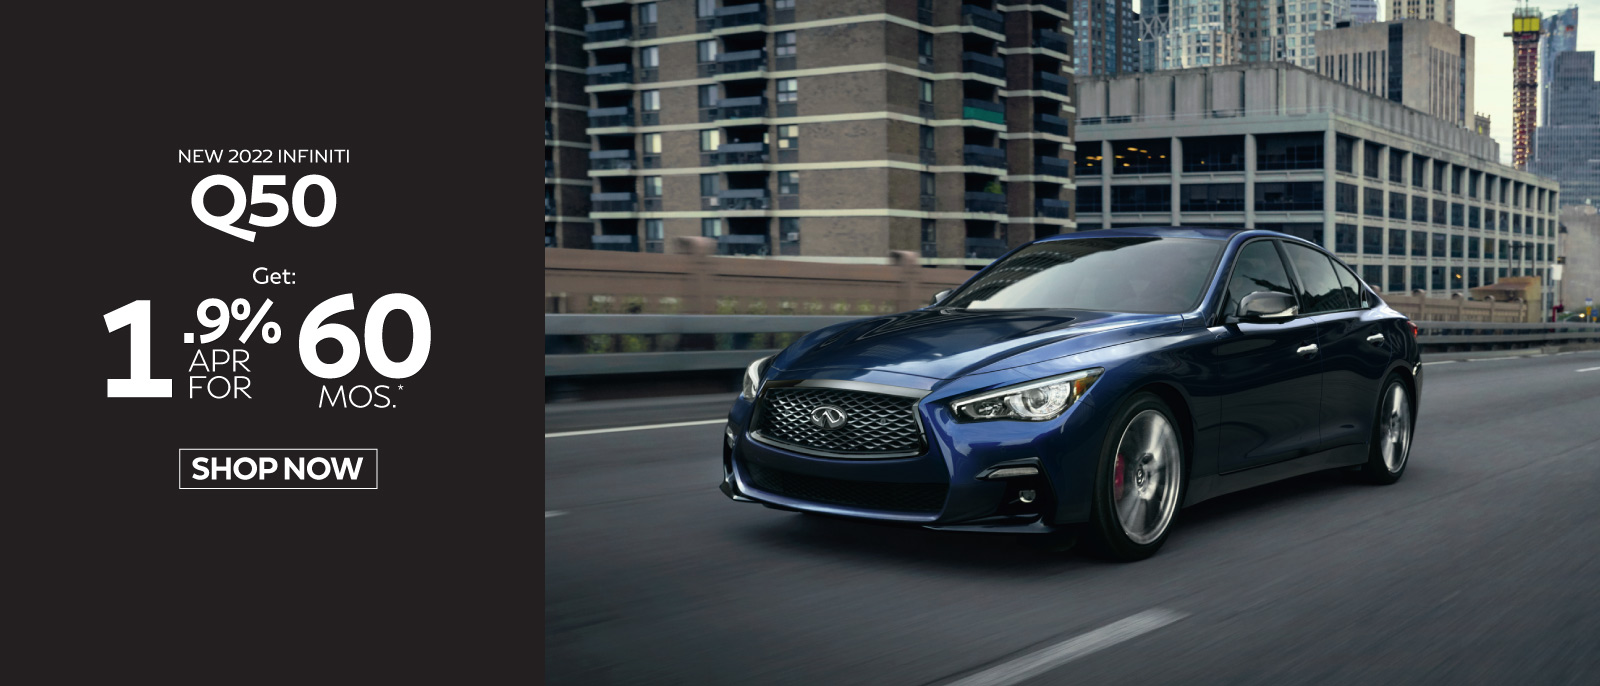 New 2020 INFINITI Q50 Edition 30 AWD Lease for only $429 a mo. for 39 mos.* $4599 due at signing. Click here to begin shopping.